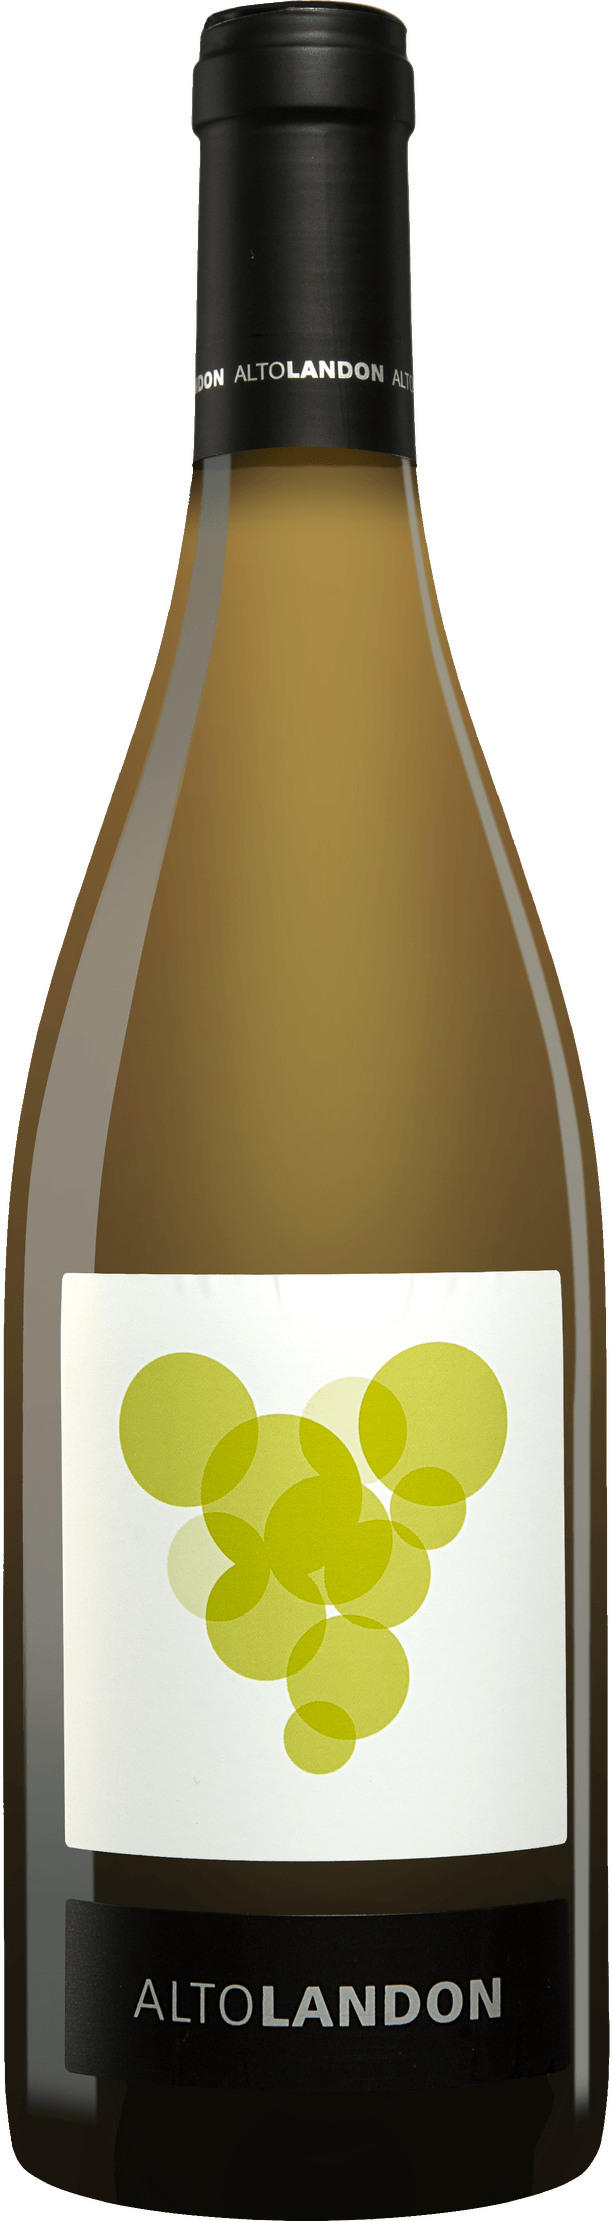 Altolandon Blanco, 2014